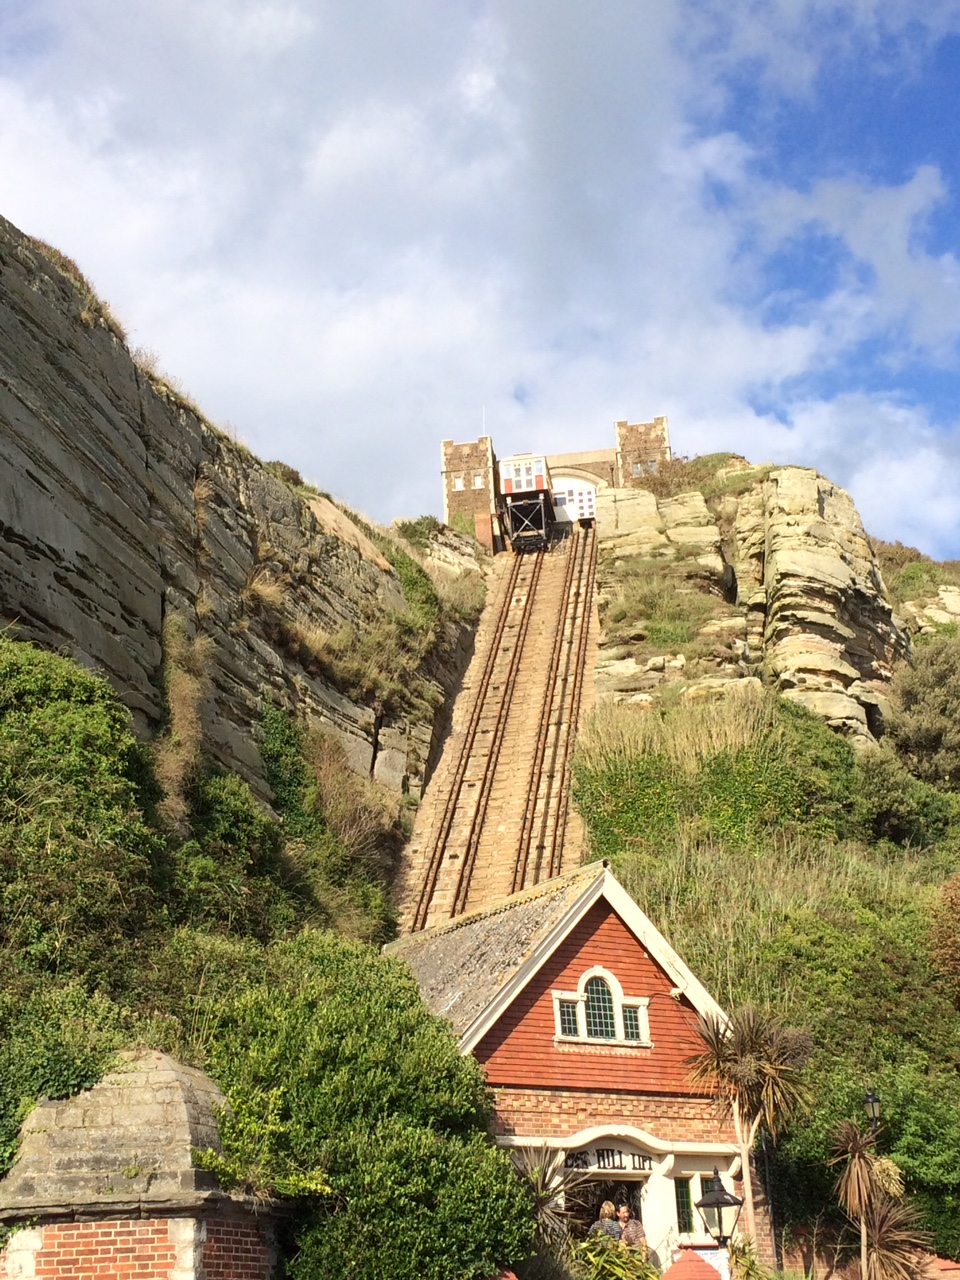 hastings funicular railway